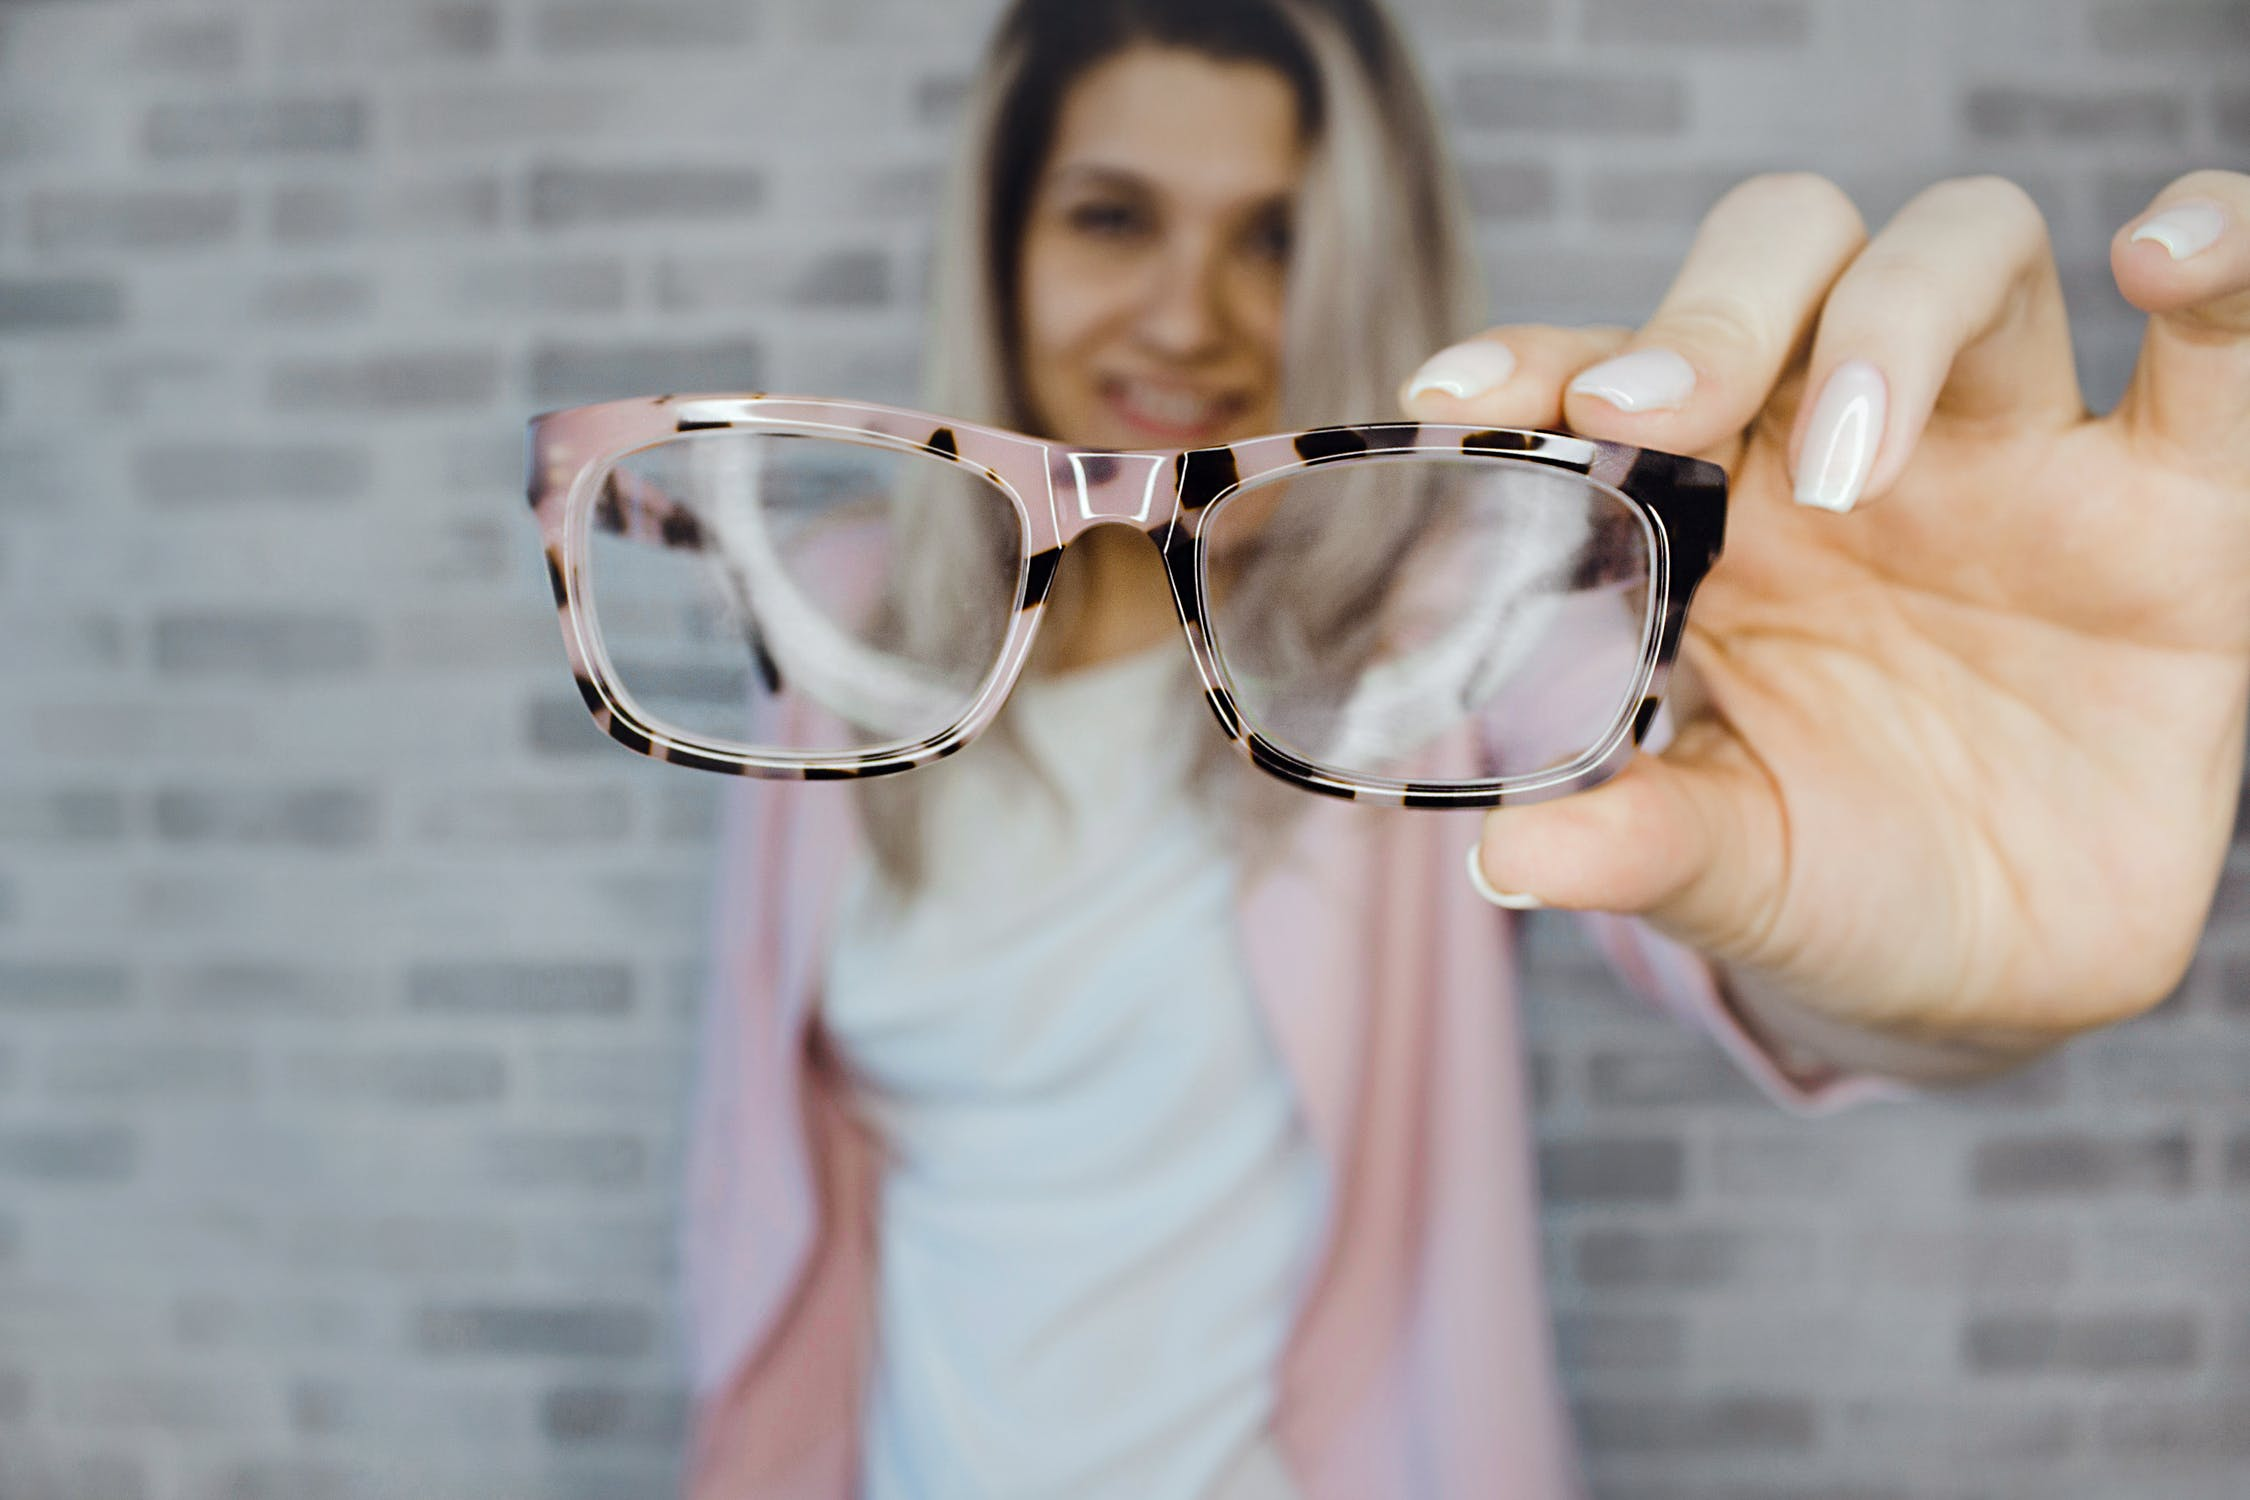 Need New Prescription Lenses in Your Old Frame?